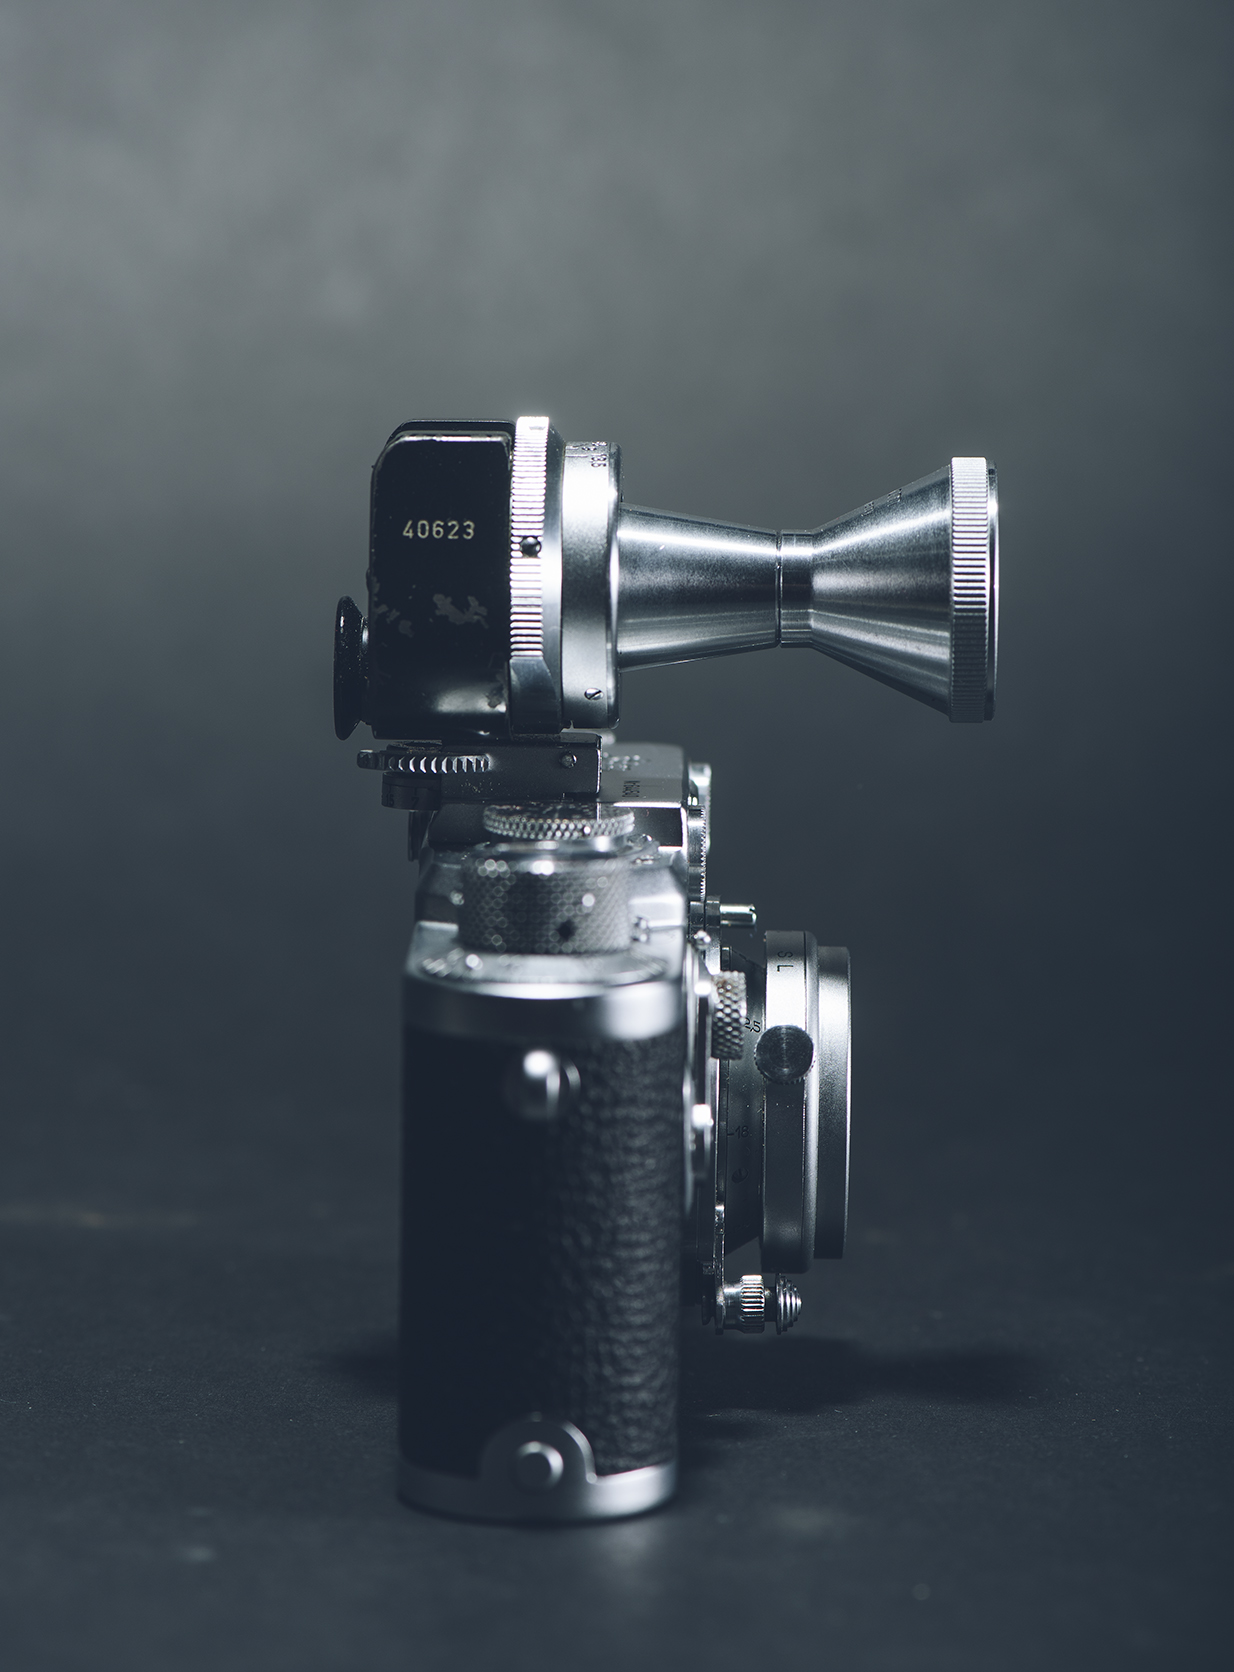 VIOOH viewfinder with the TUVOO 2.8 cm lens sits gloriously on top of the lllf